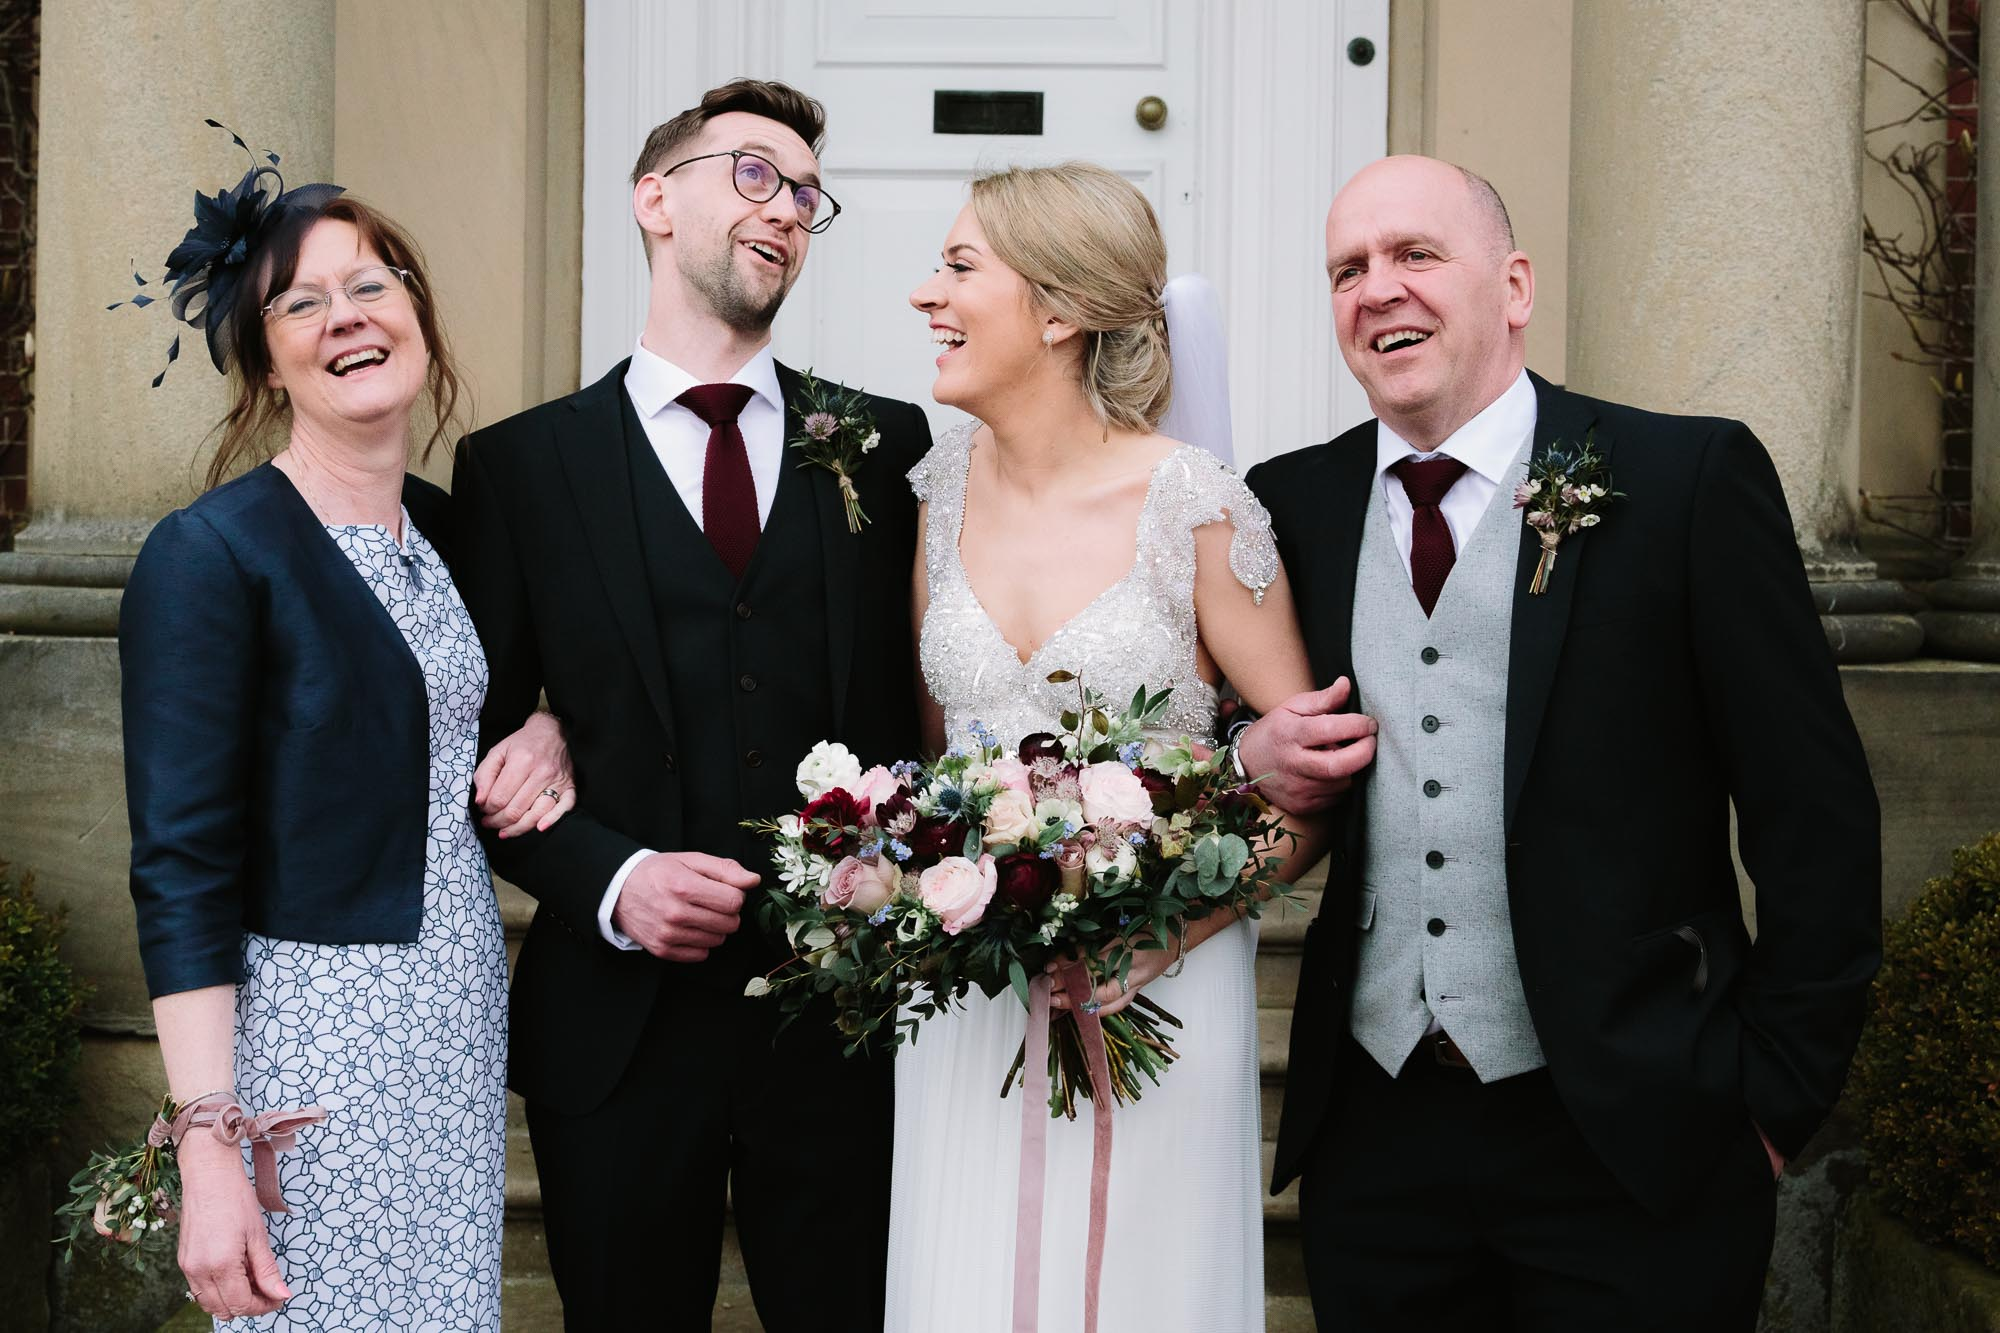 wedding albums | https://philippajamesphotography.com › oxford-wedding-photography-group-shots